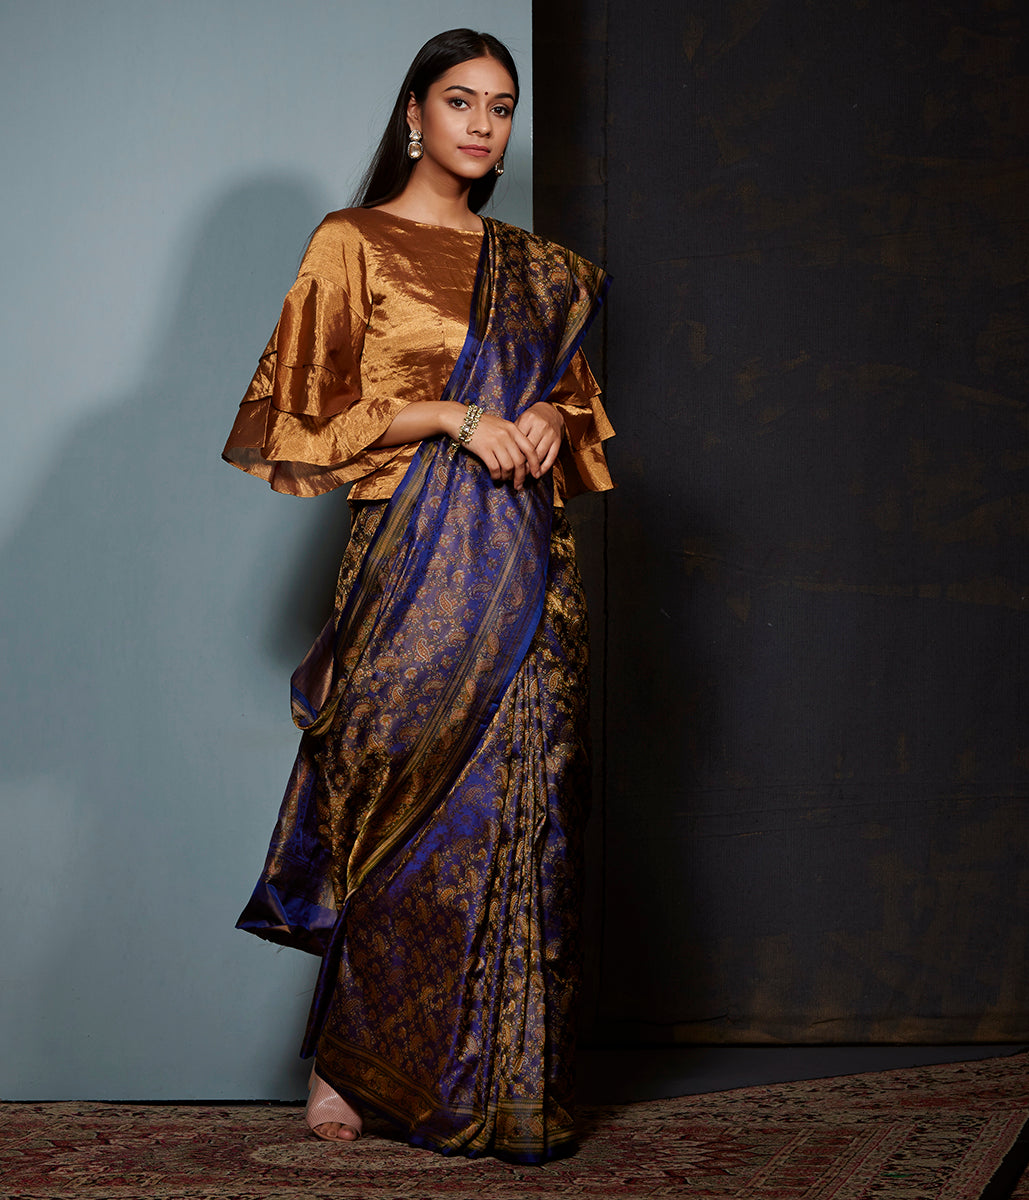 Navy blue banarasi Jamawar saree